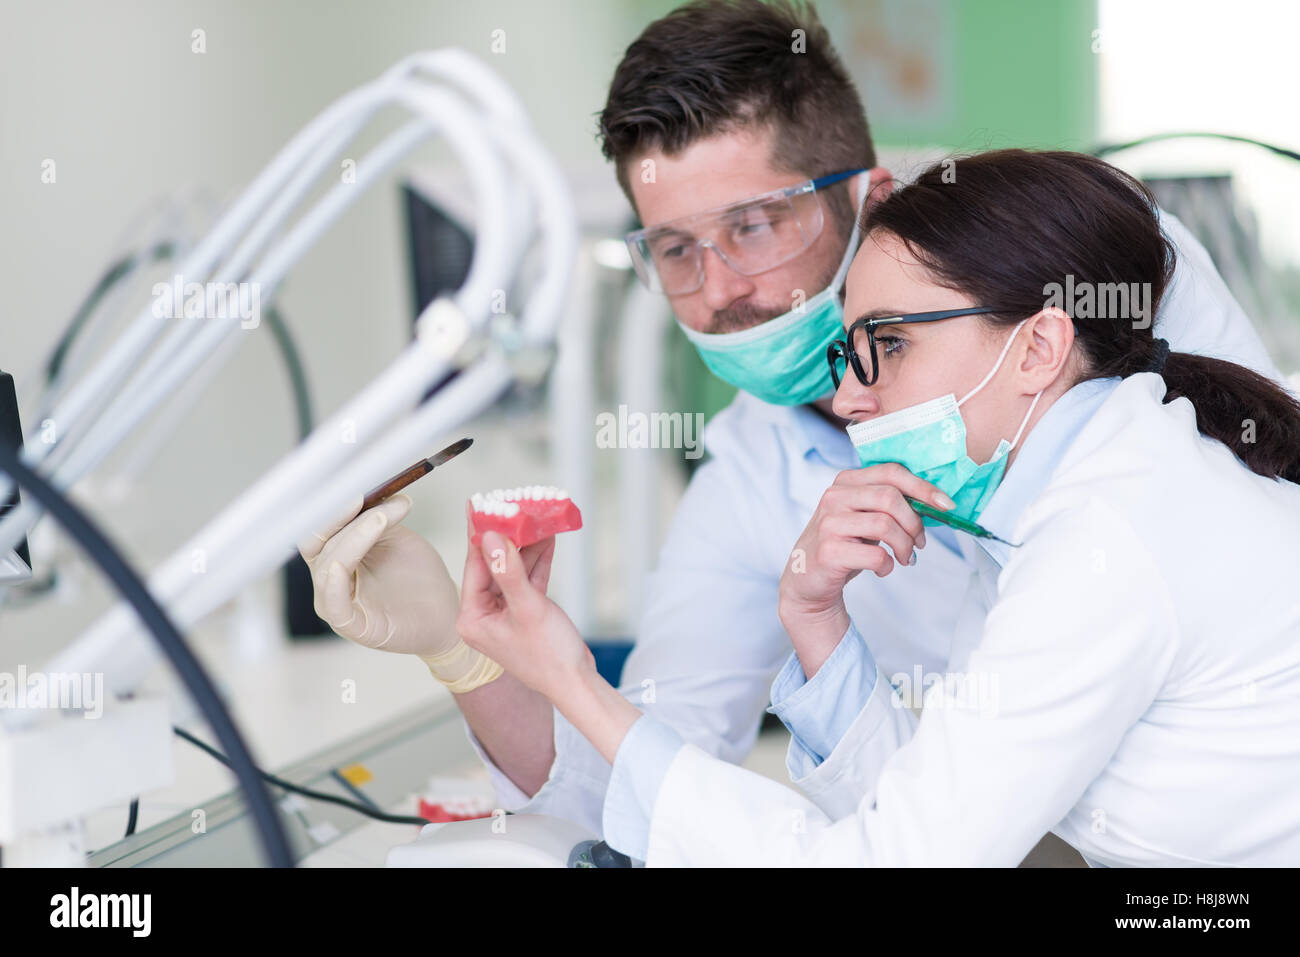 Busy young stomatology students working carefully on anatomical models Stock Photo